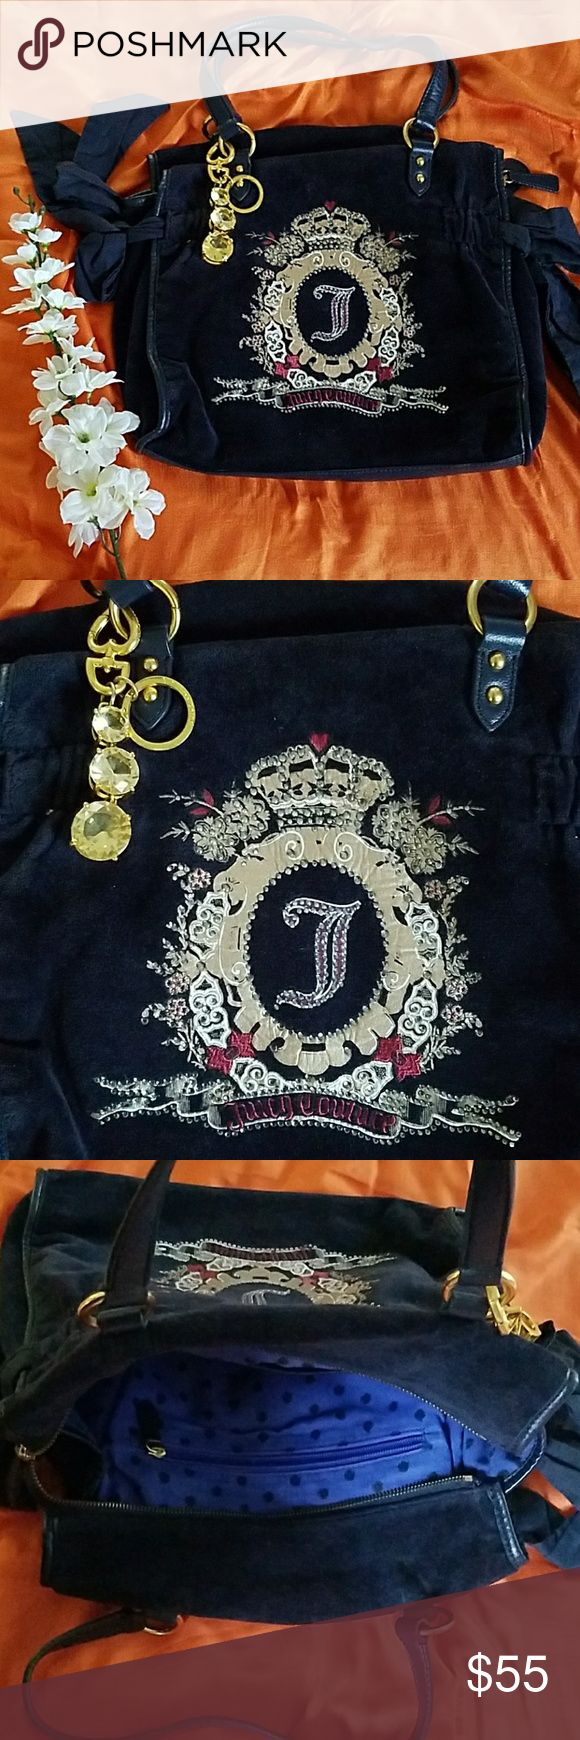 Juicy Couture beautiful bag Juicy Couture beautiful bag Juicy Couture Bags